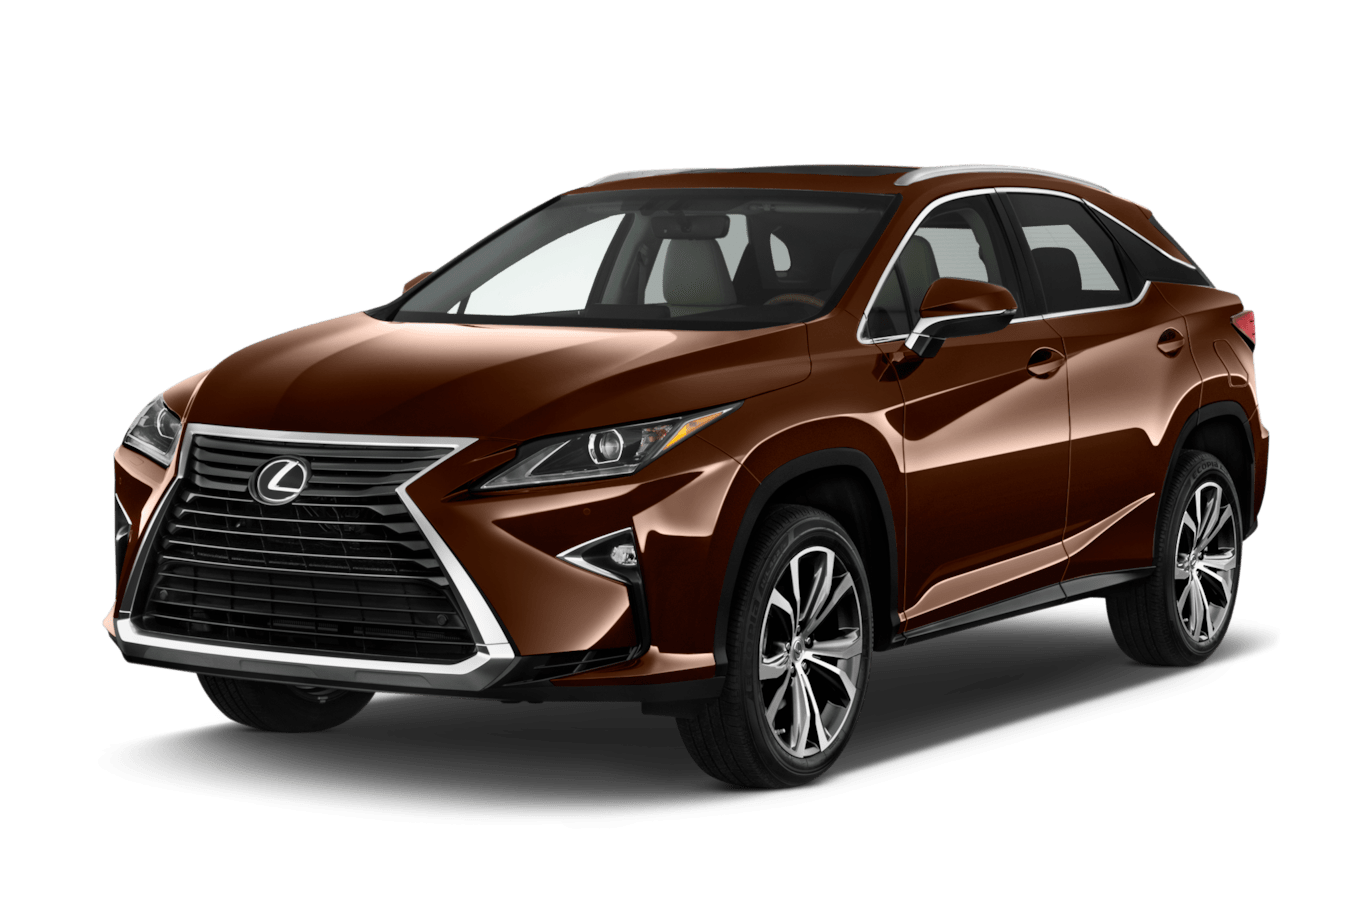 2016 Lexus RX350 Reviews and Rating